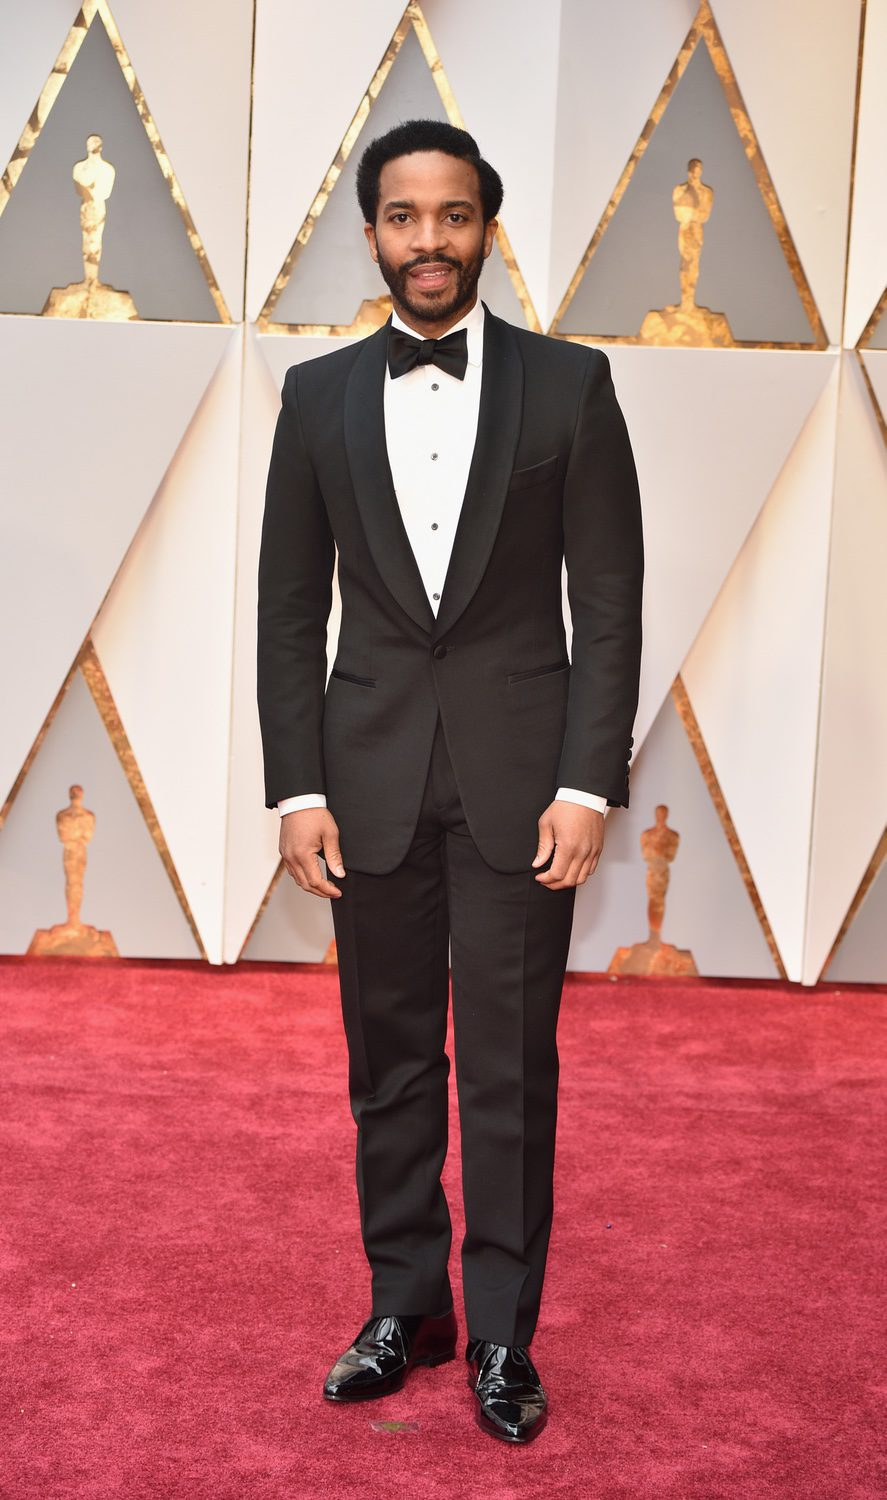 Andre Holland at the red carpet of the Oscars 2017